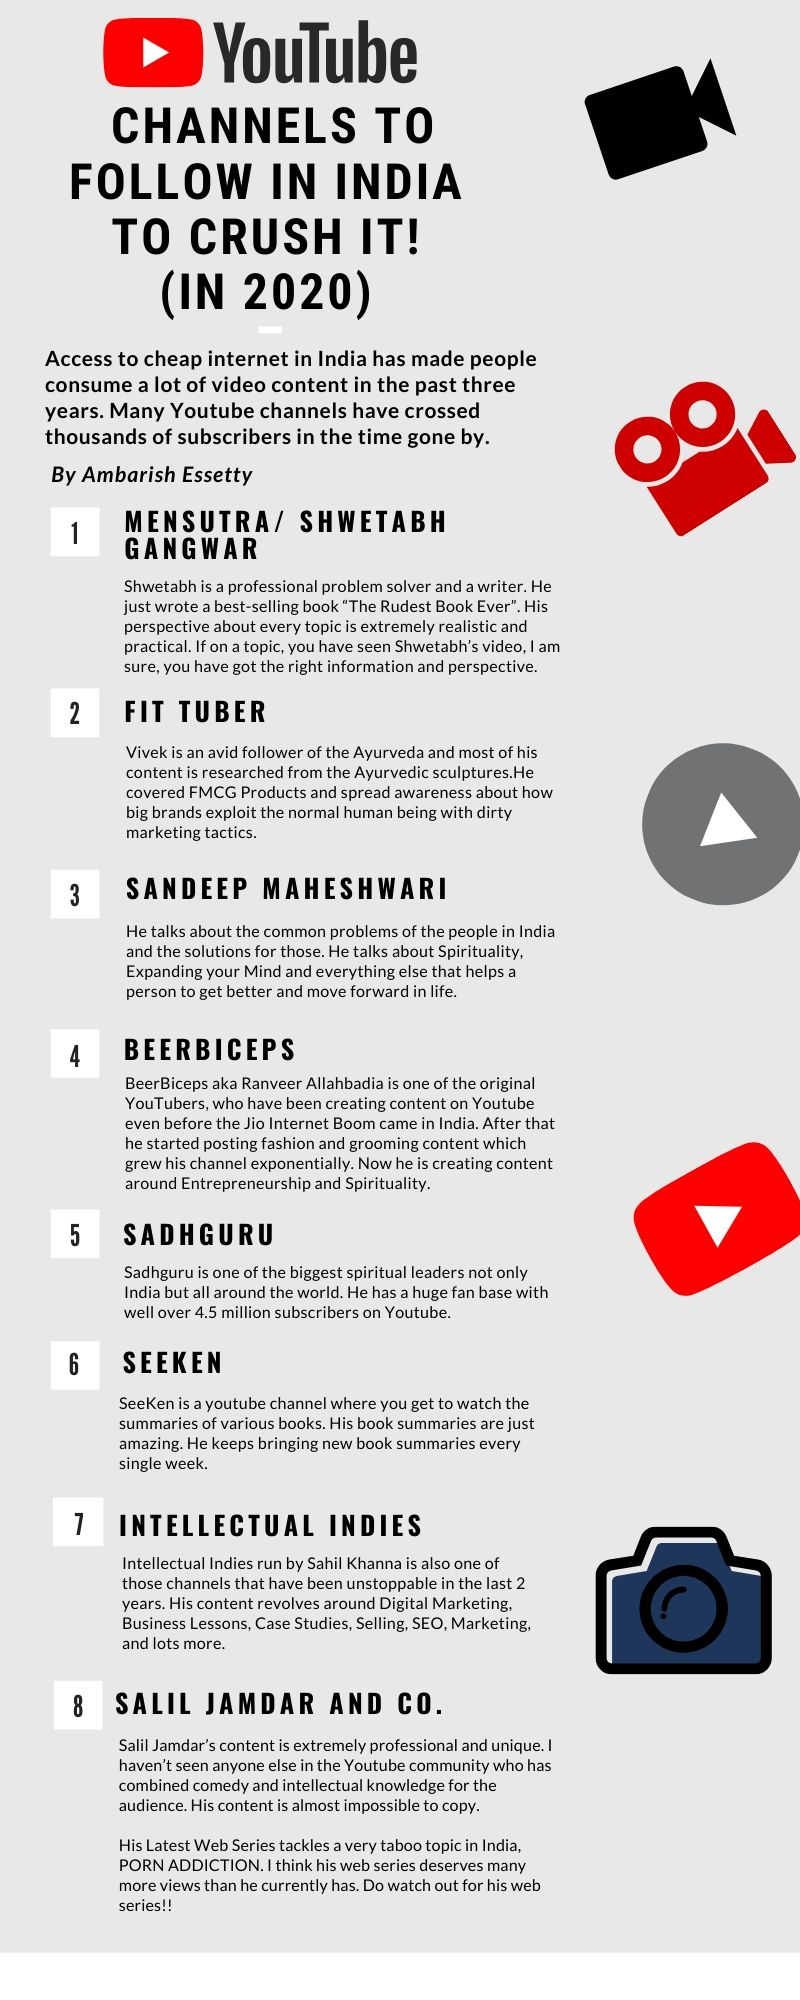 Youtube Channels to follow IN INDIA (IN 2020)